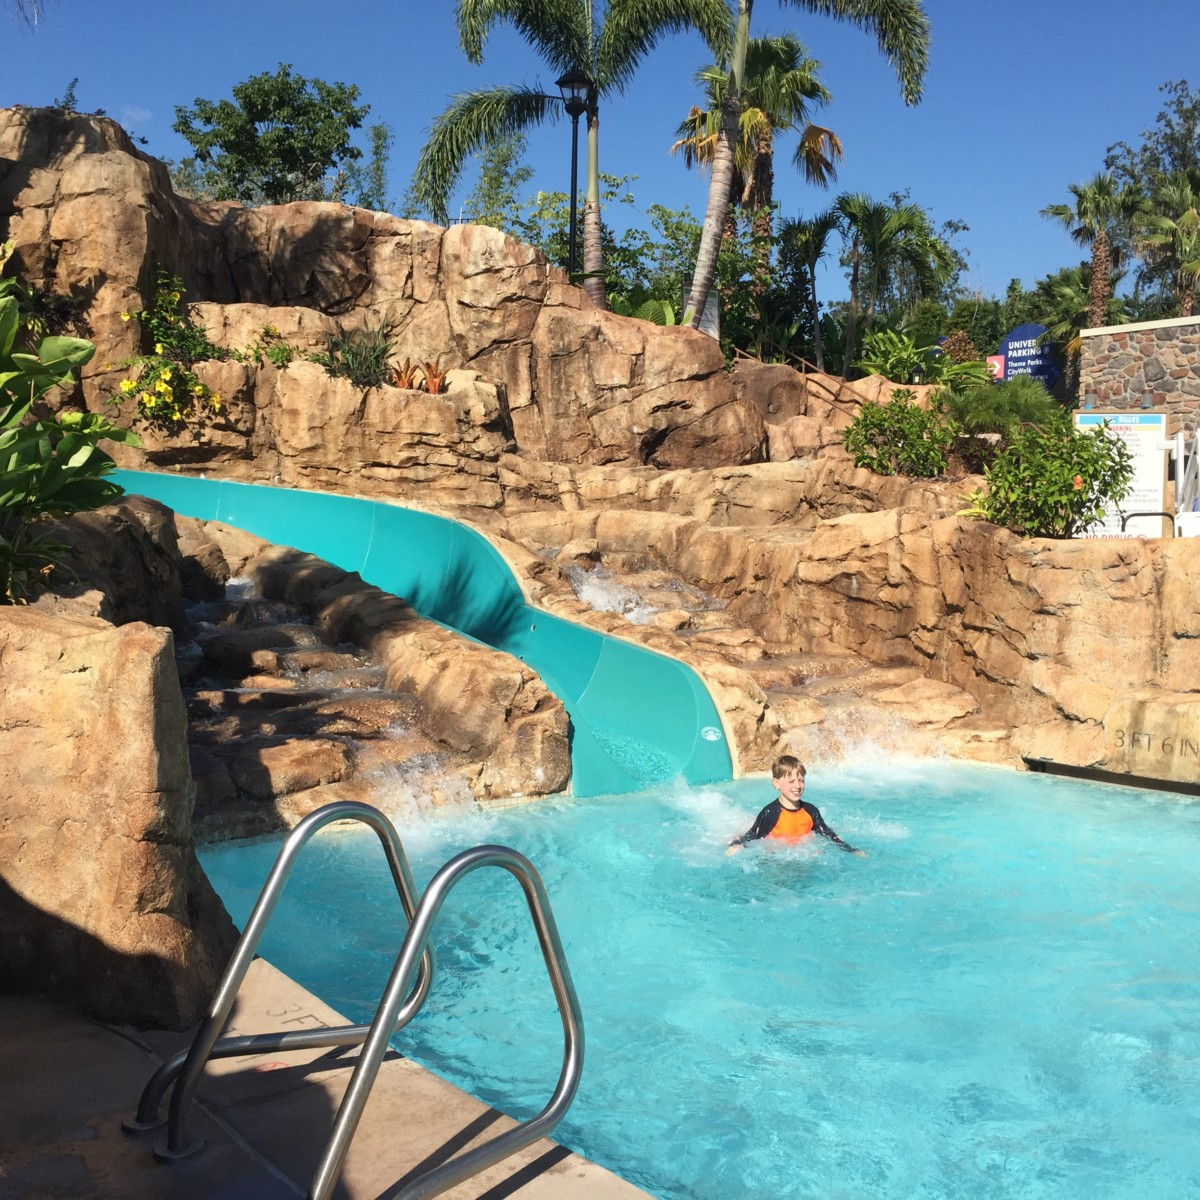 Travelling to Universal Orlando Resort with Virgin Holidays, a review - Globalmouse Travels